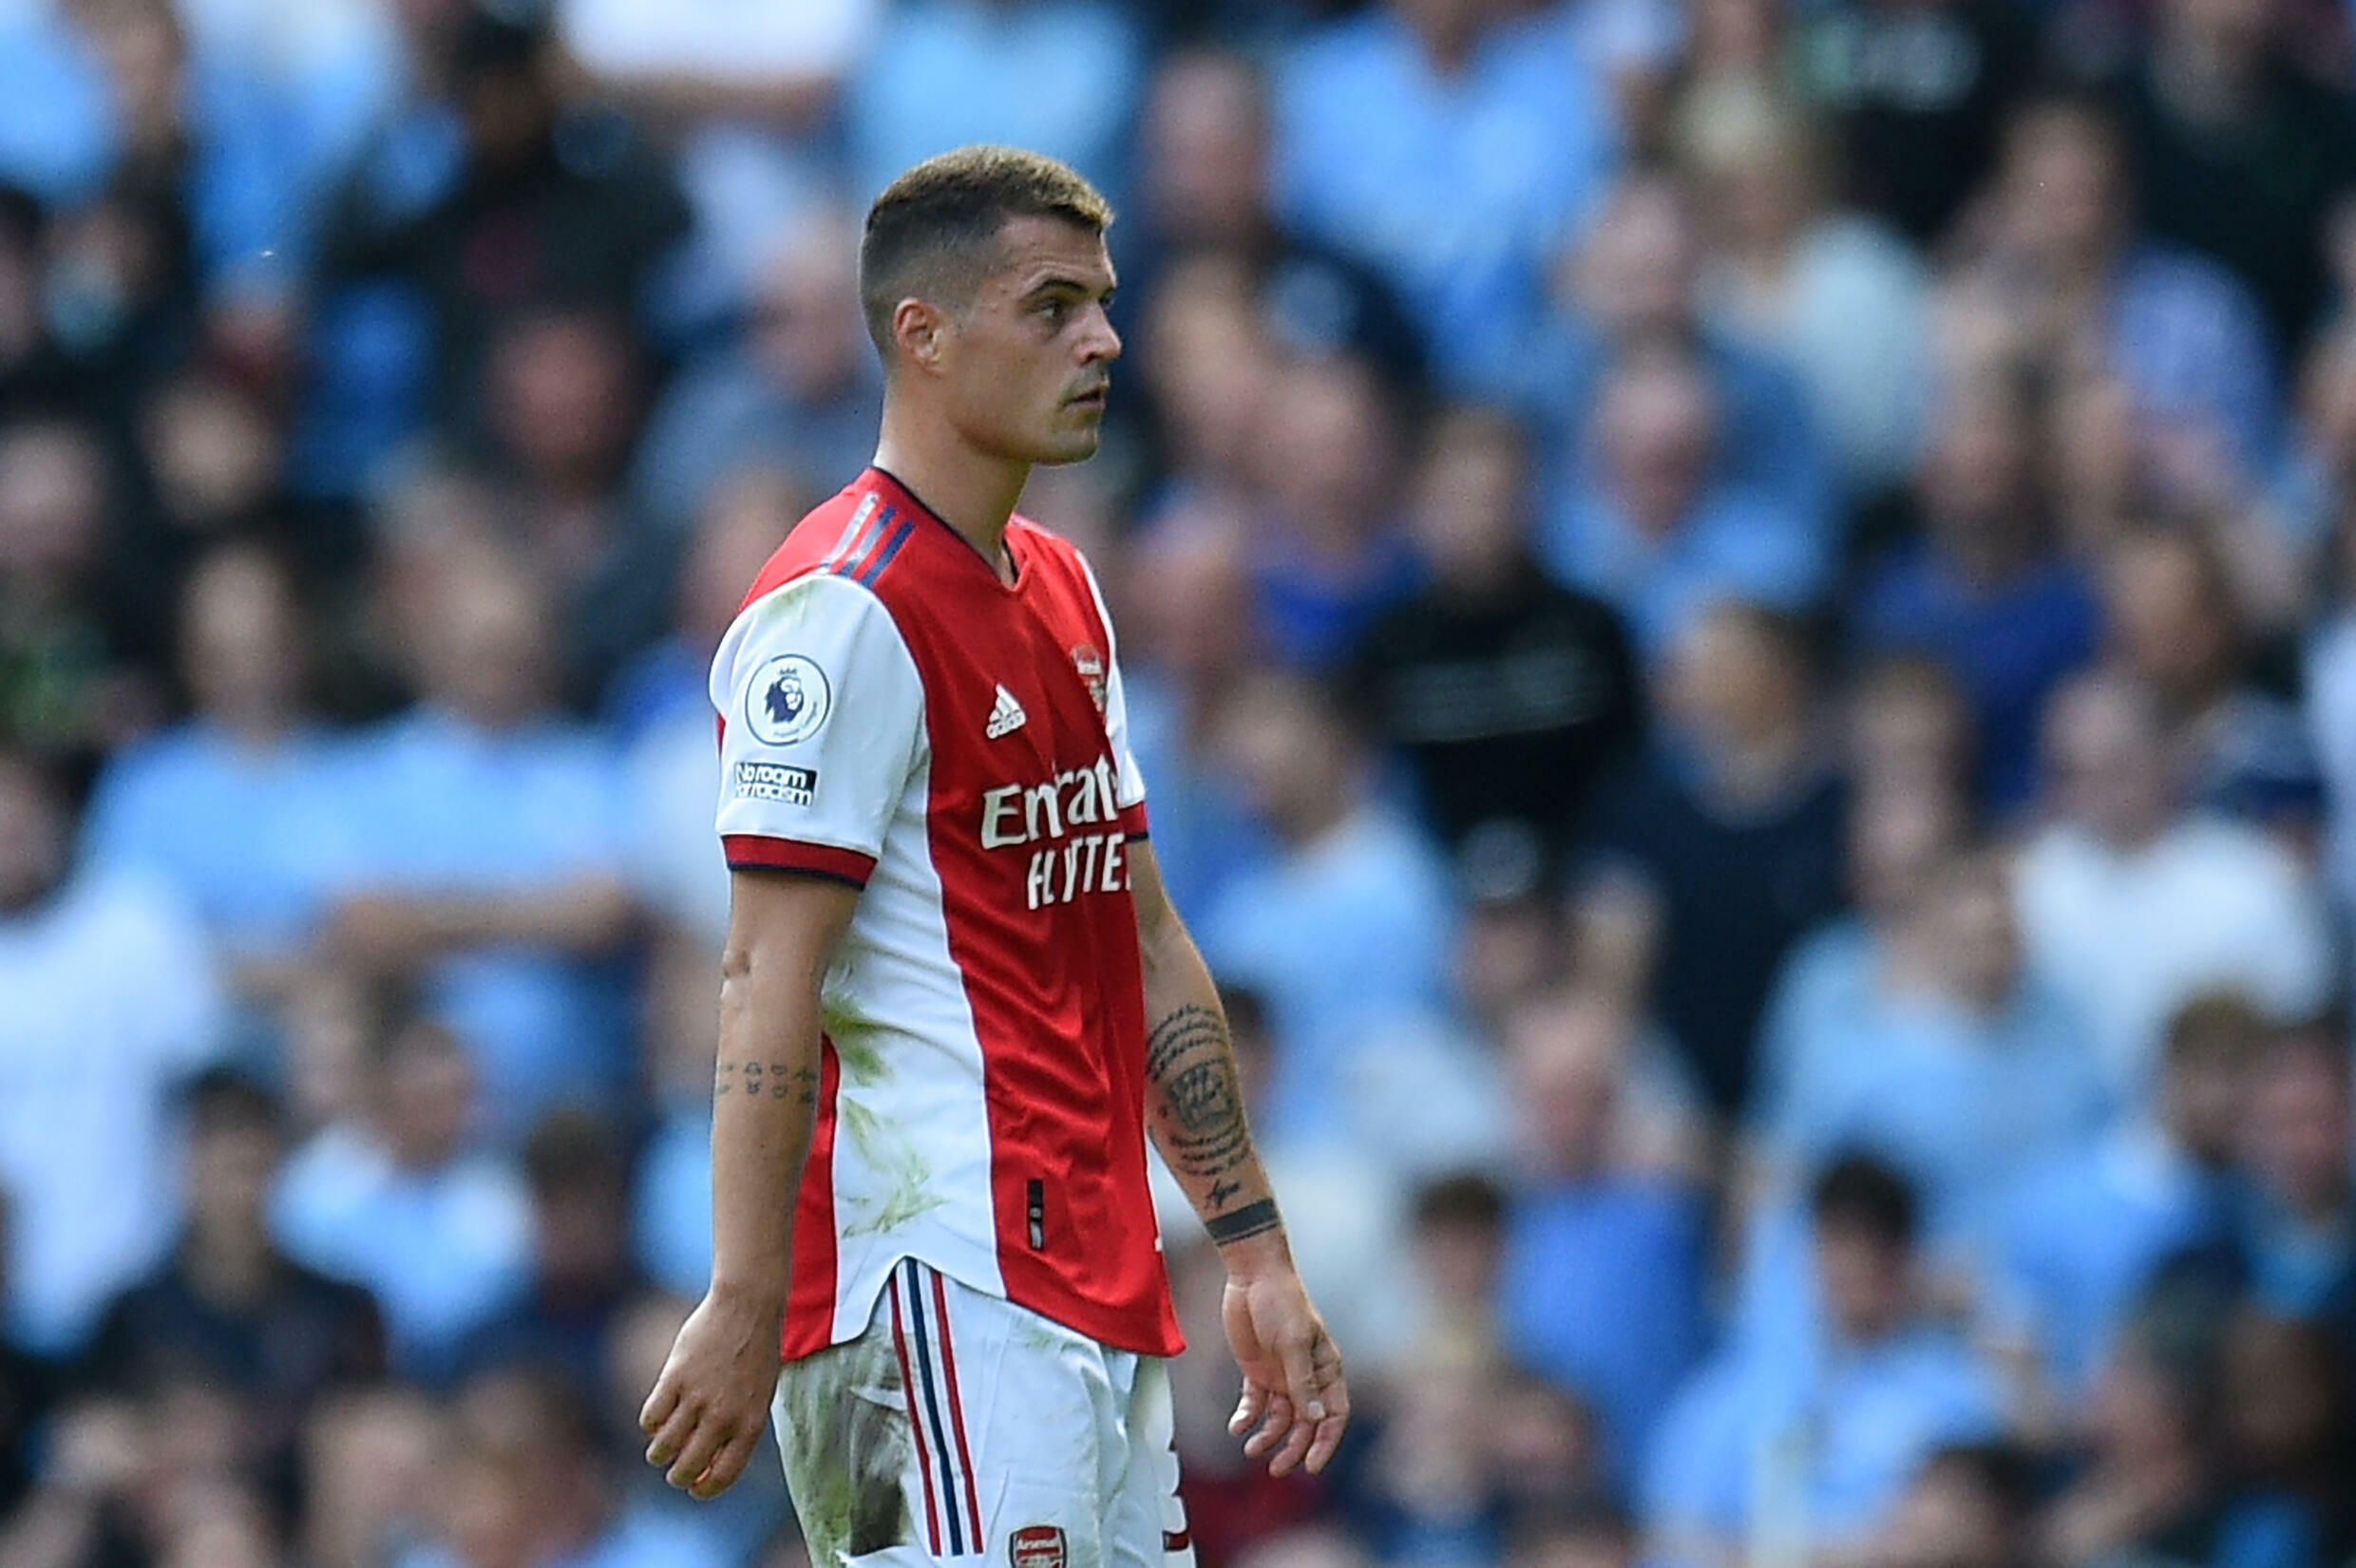 Arsenal's Granit Xhaka was sent-off in a 5-0 thrashing at the hands of Manchester City